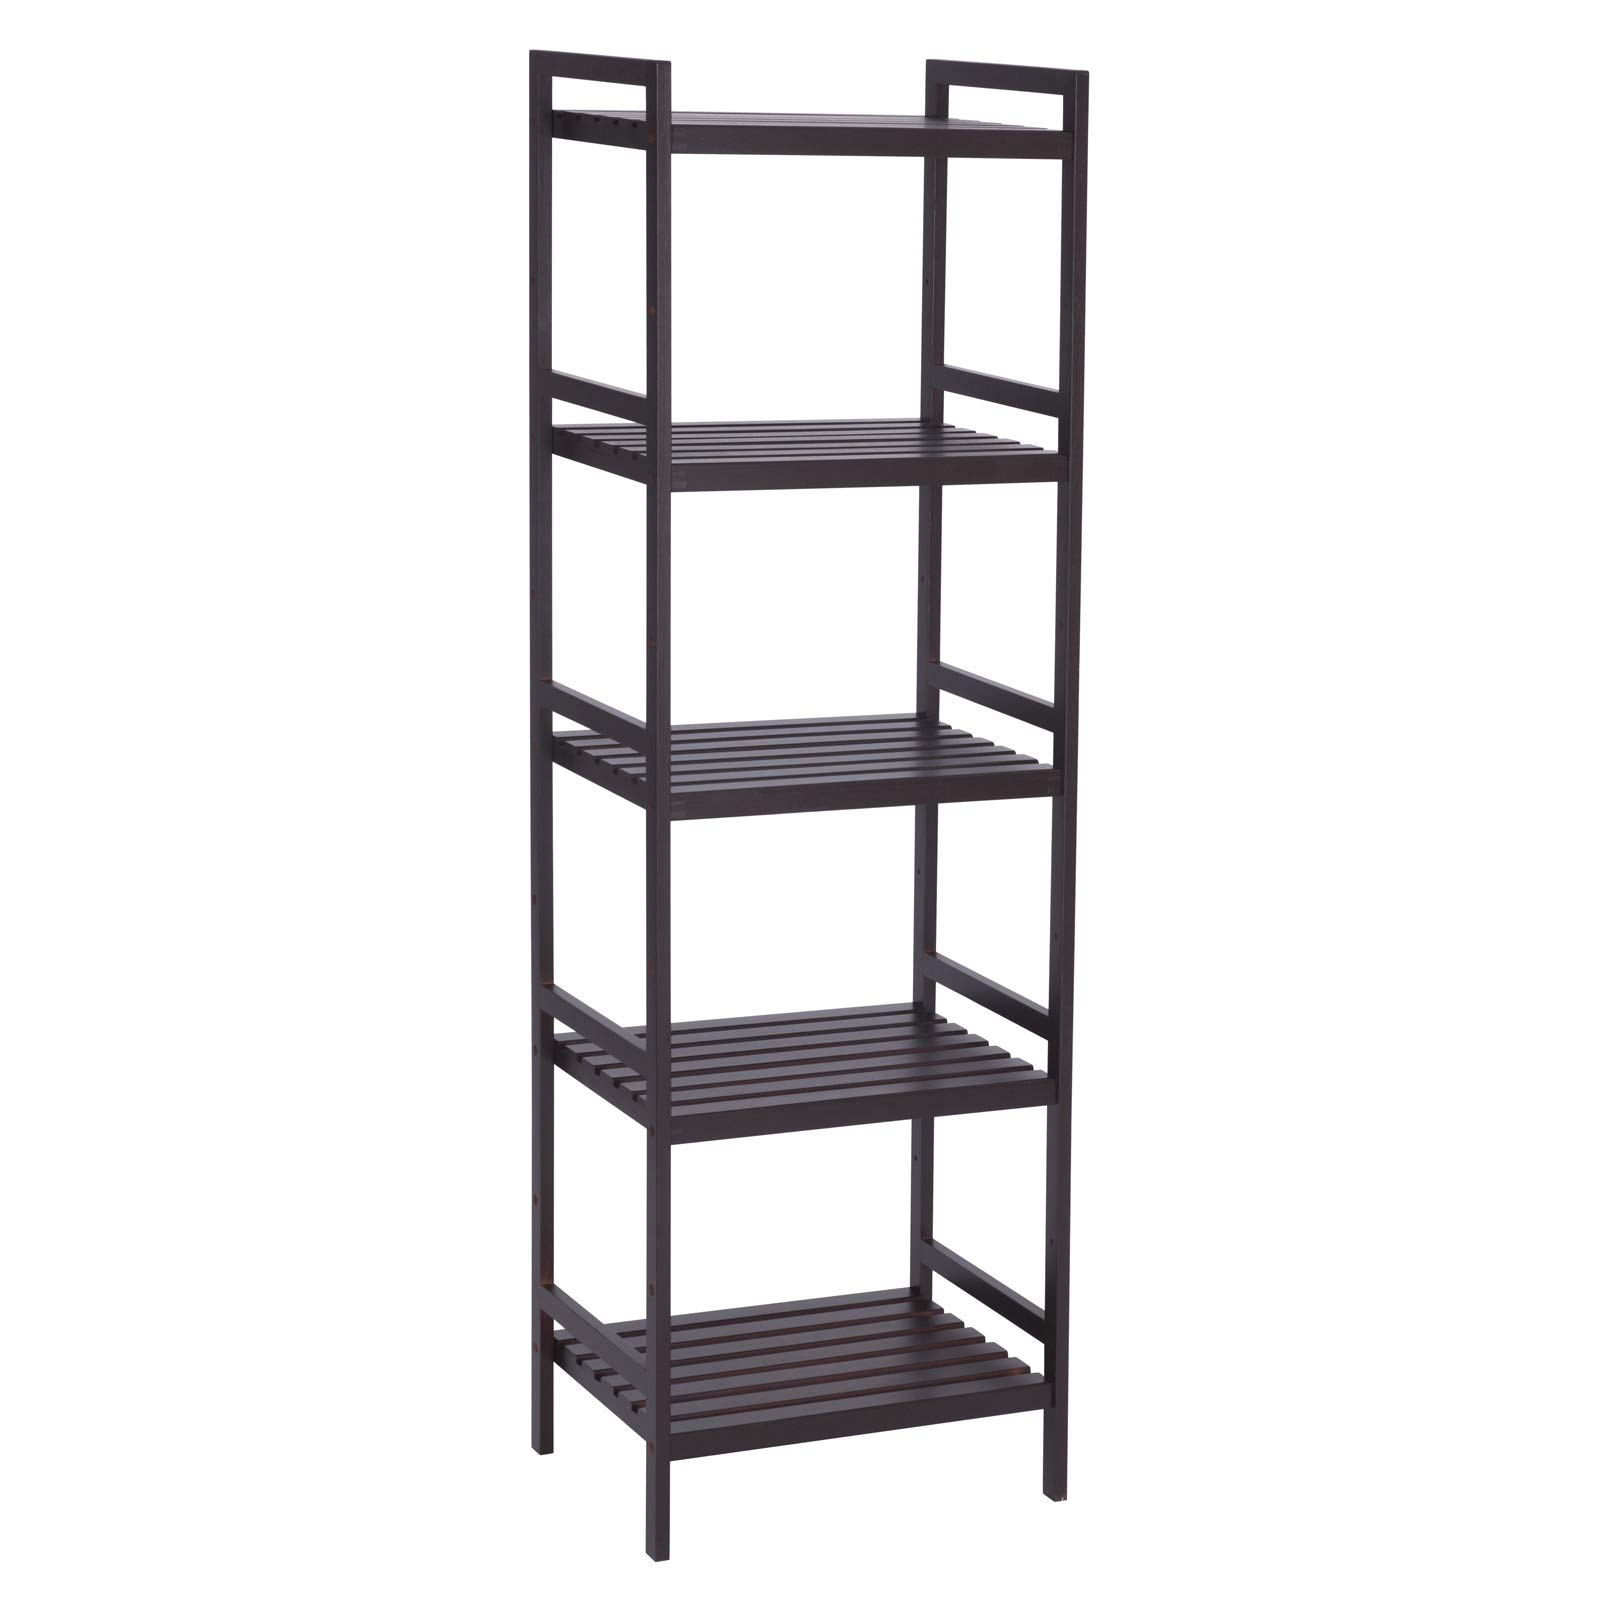 SONGMICS Adjustable Storage Shelf Rack,5-Tier Multifunctional Shelving Unit Stand Tower,Bookcase for Bathroom Living Room Kitchen 17.7 x 12.4 x 55.9'', Holds up to 132 lbs Bamboo Brown UBCB75BR